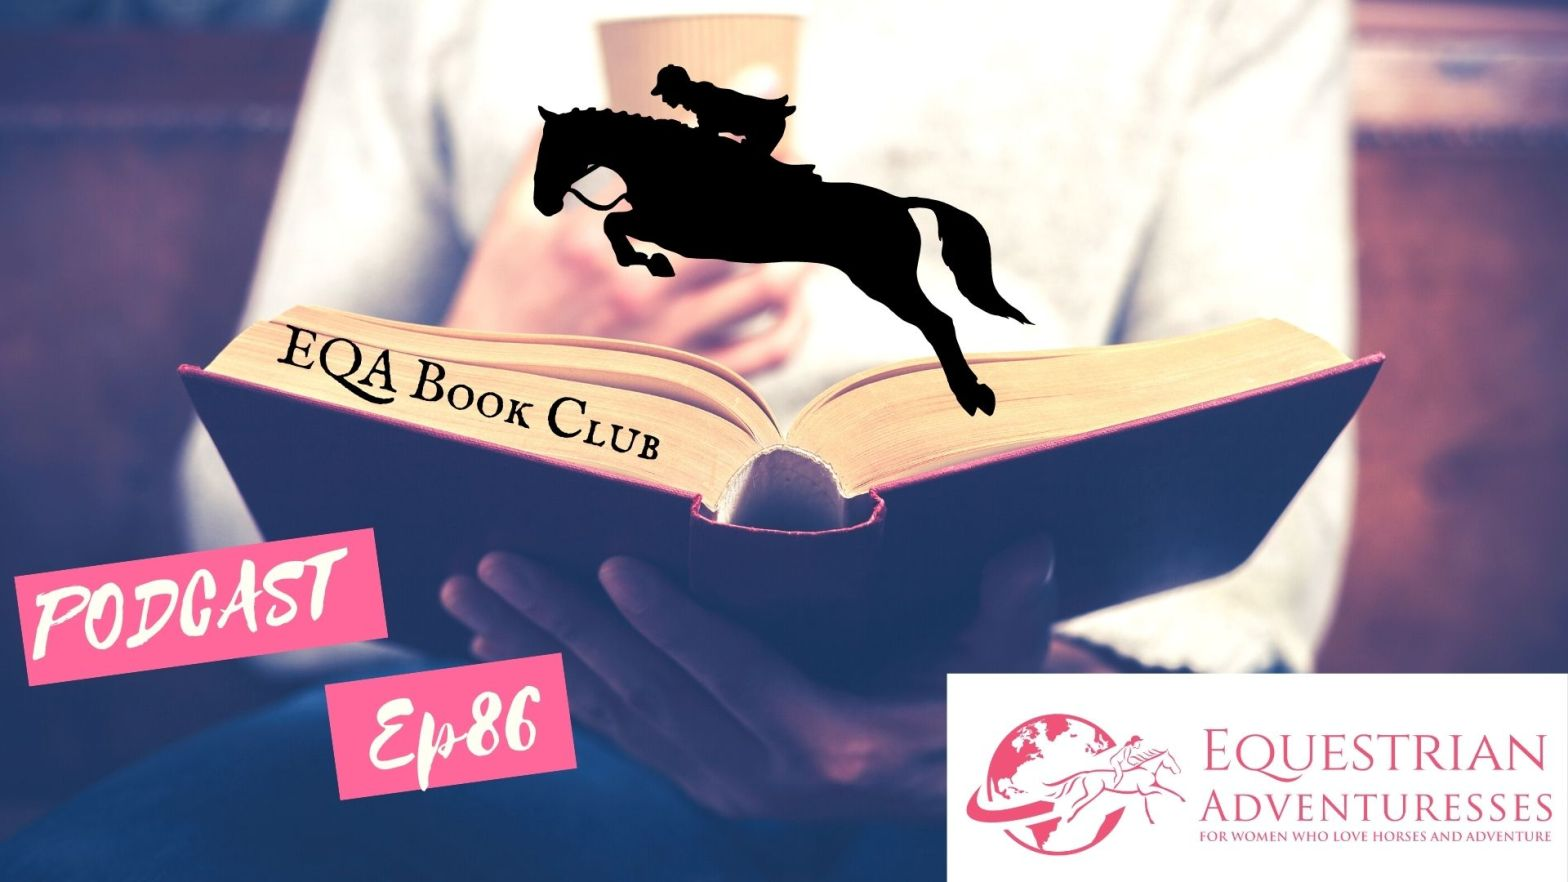 Equestrian Adventuresses Travel and Horse Podcast Ep 86 - The EQA Book Club